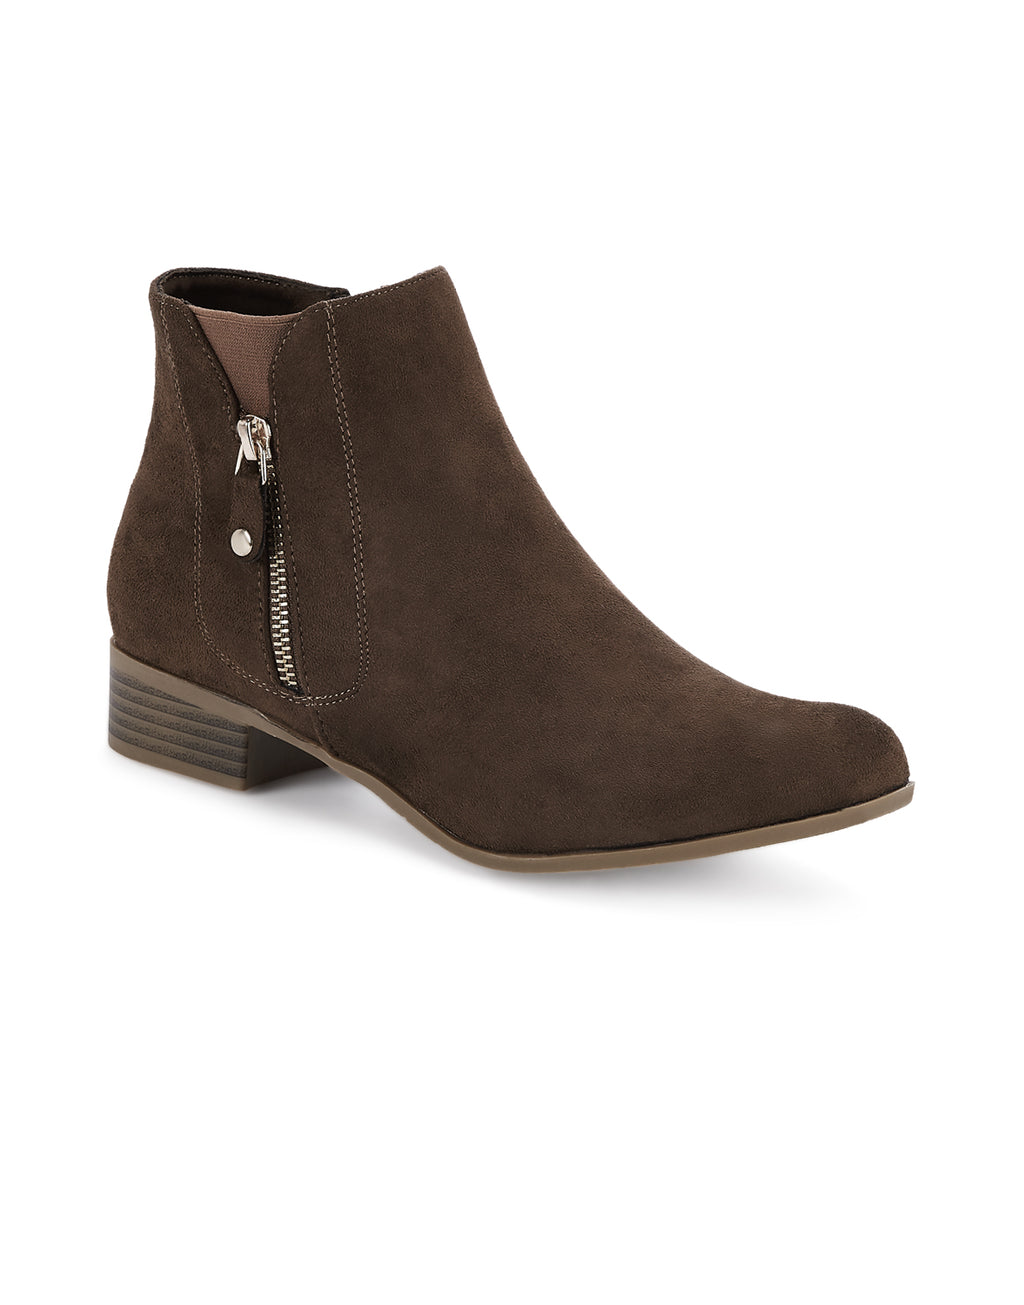 Nicole Brown Boots